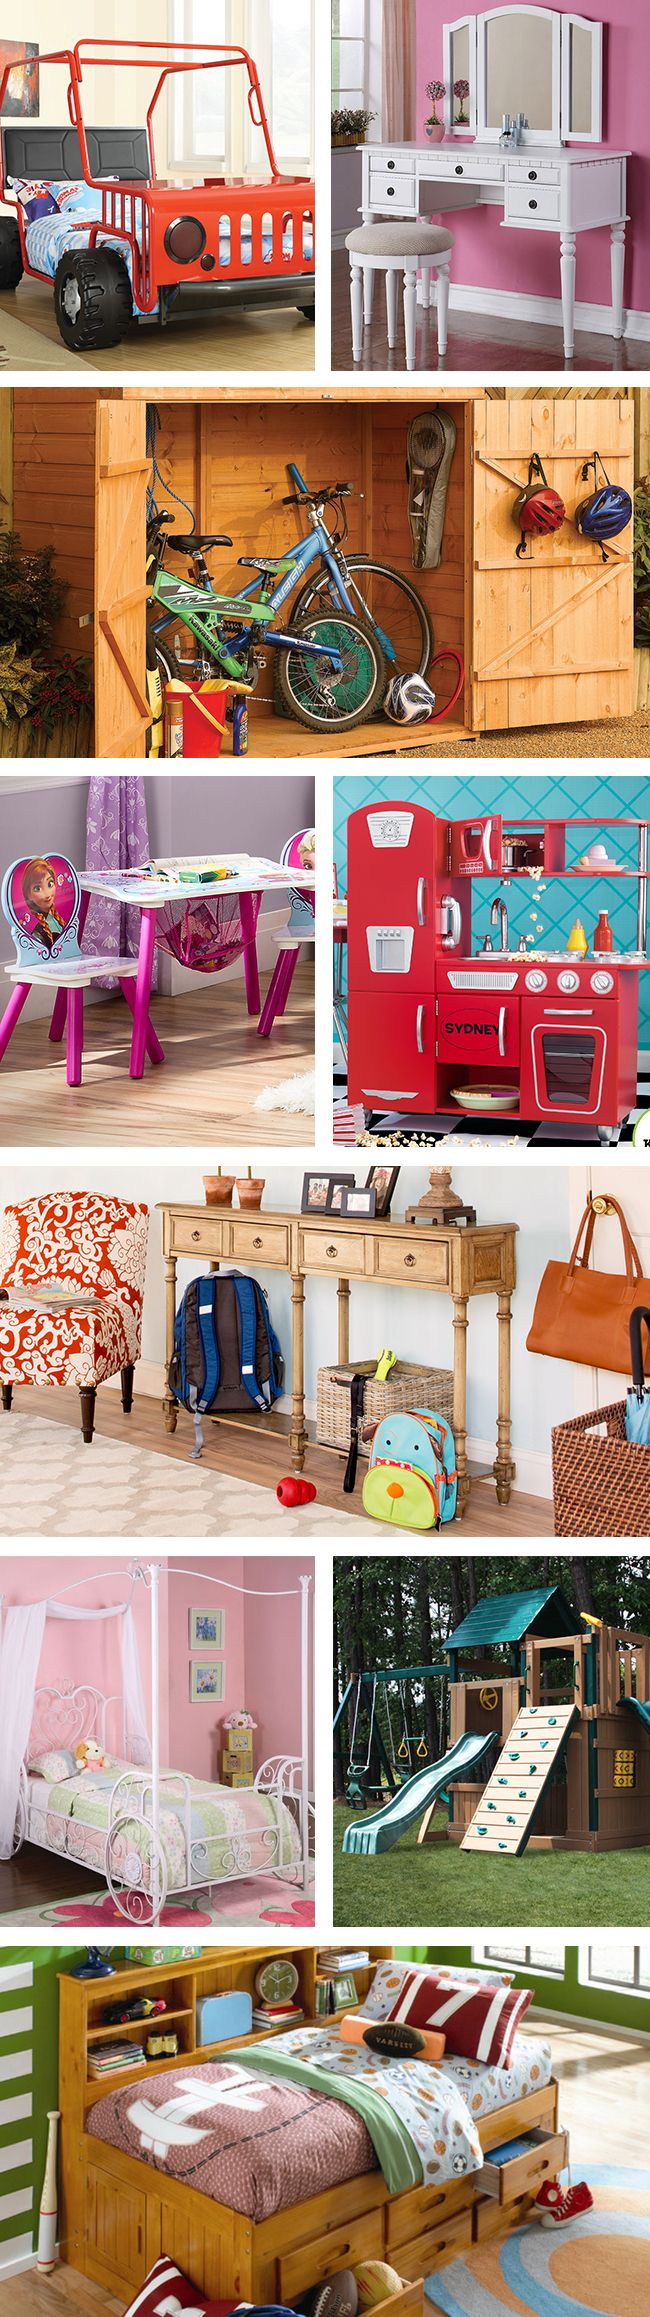 Kids Bedroom, Kids Rooms, Bedroom Ideas, Boy Rooms, Kid Beds, Play Houses, Kids  Furniture, Vanity Cart, Ikea Vanity